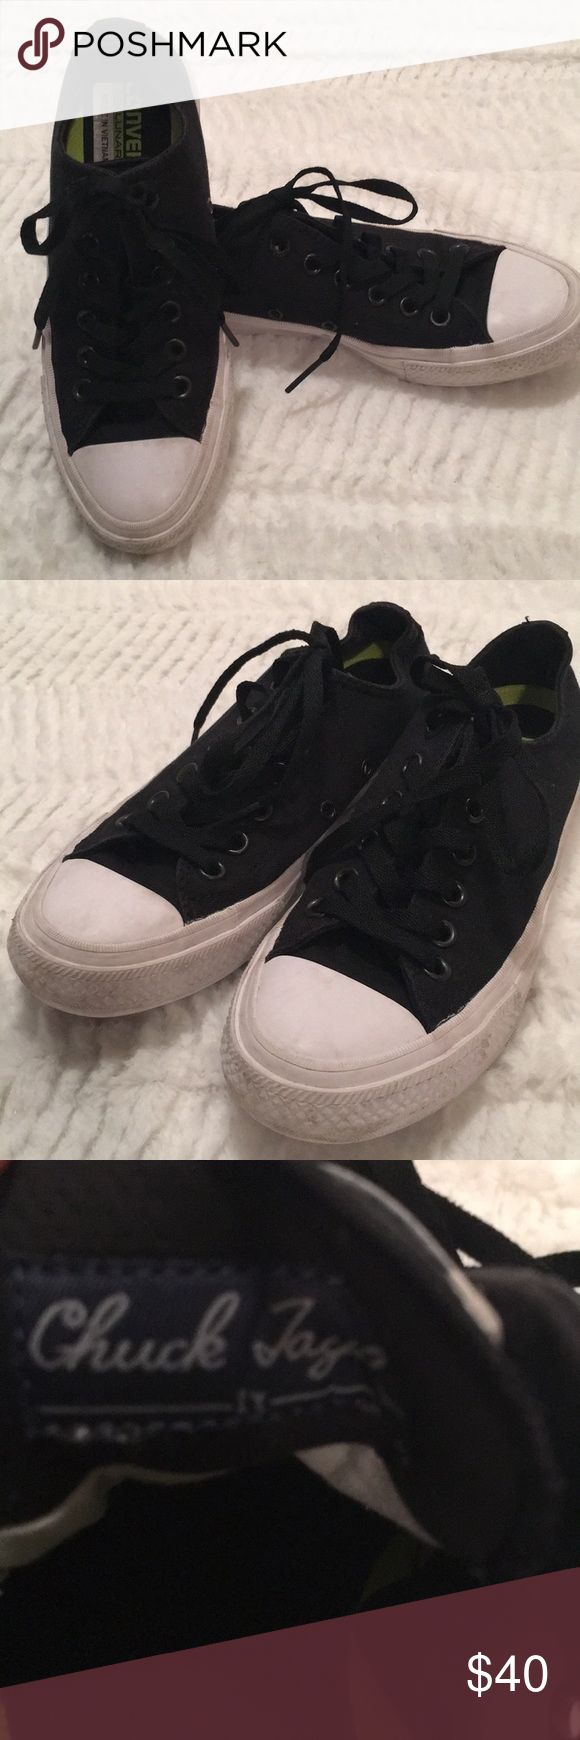 Big Boys Converse with Lunarlon black size 5 Converse black All Star size 5 boys. Can fit women's size 6 or 6 1/2.  In good condition. No rips holes and comes from a smoke free home. Converse Shoes Sneakers